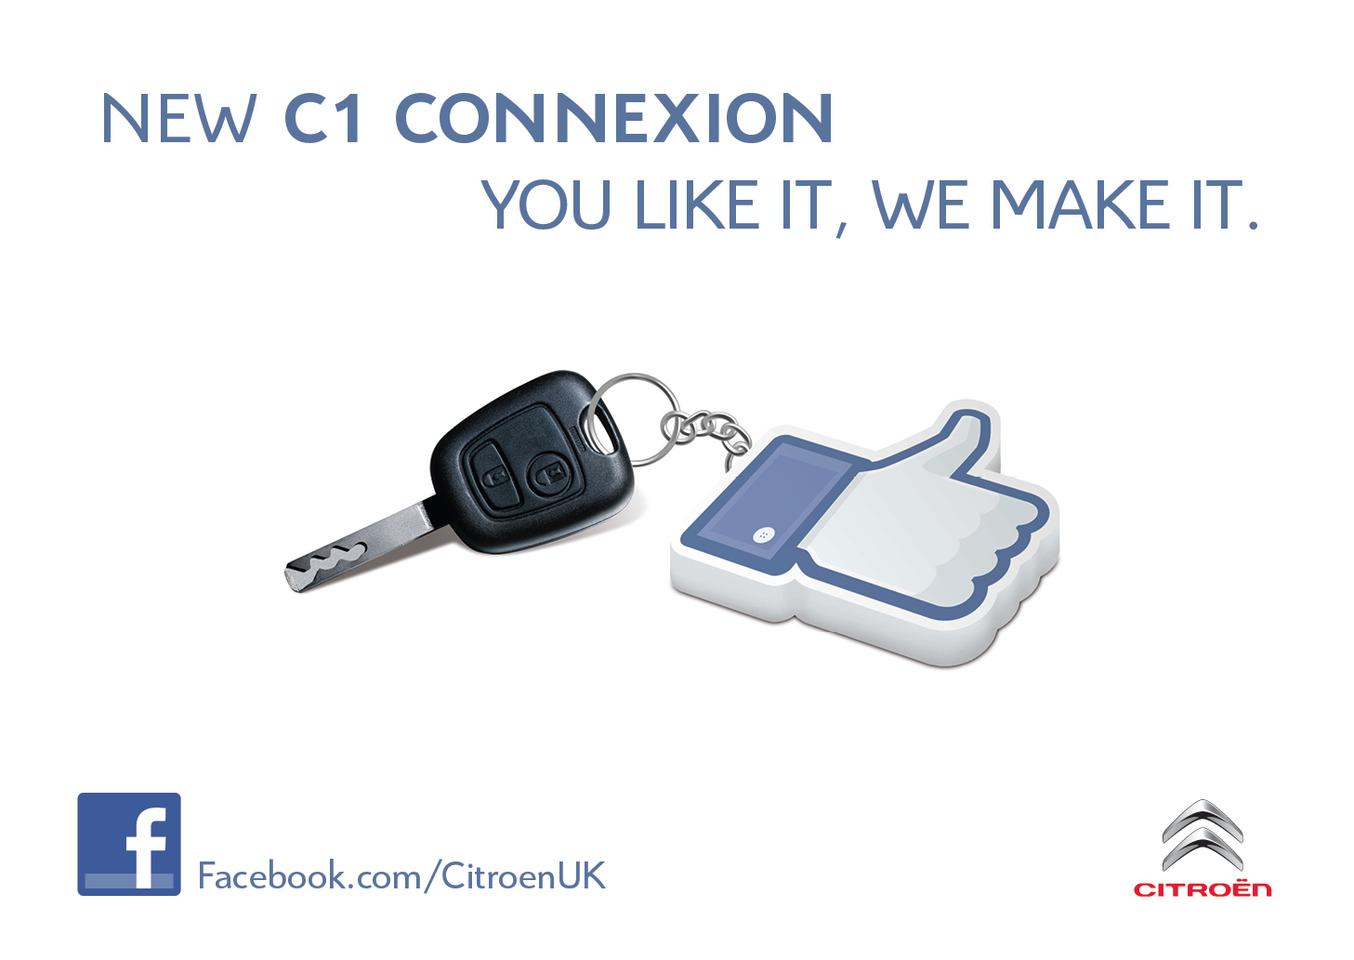 Citroen is crowd sourcing the design of a new C1 variant through Facebook